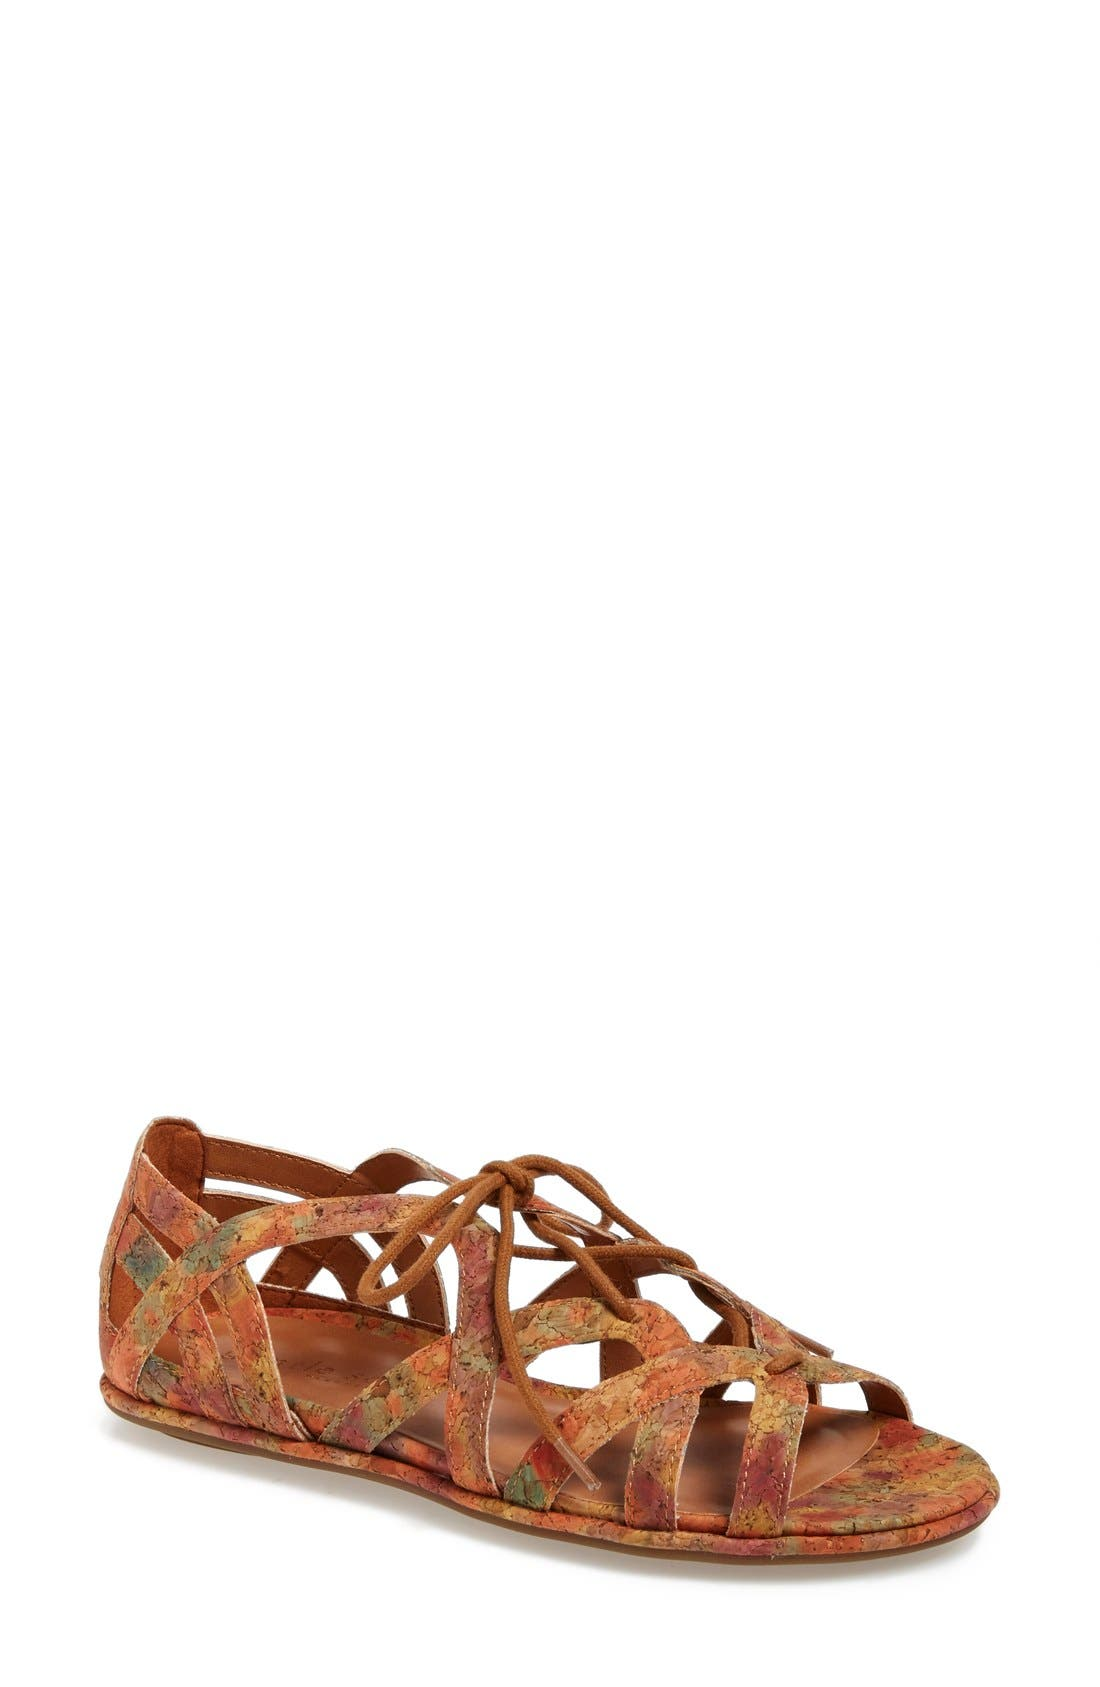 'Orly' Lace-Up Sandal,                         Main,                         color, Natural/ Floral Cork